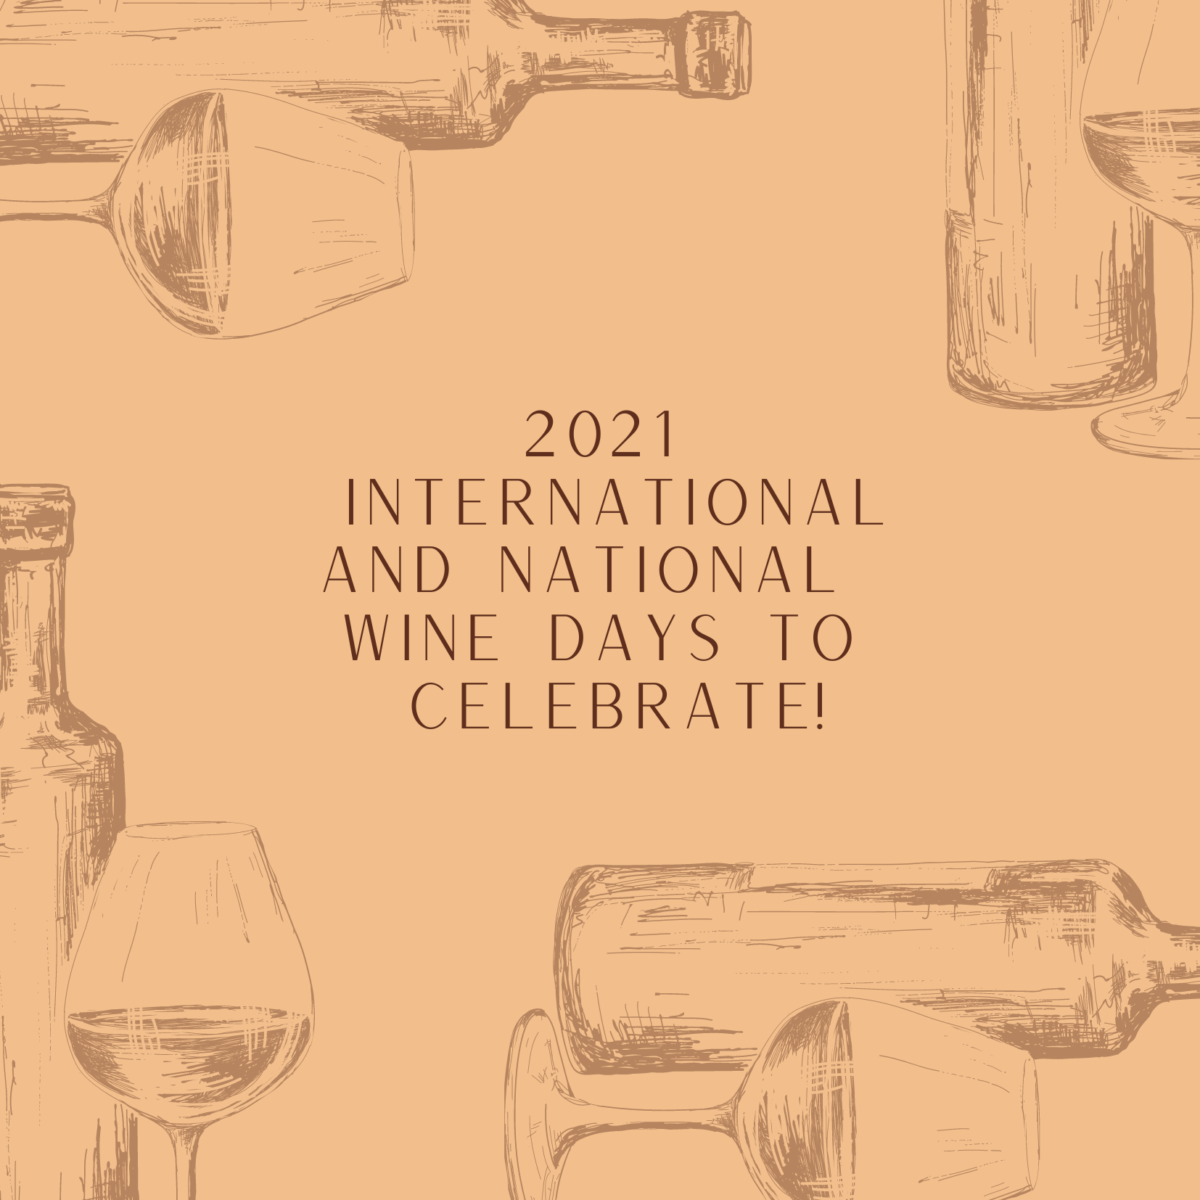 Save the Dates: 2021 International Wine Days to Celebrate!